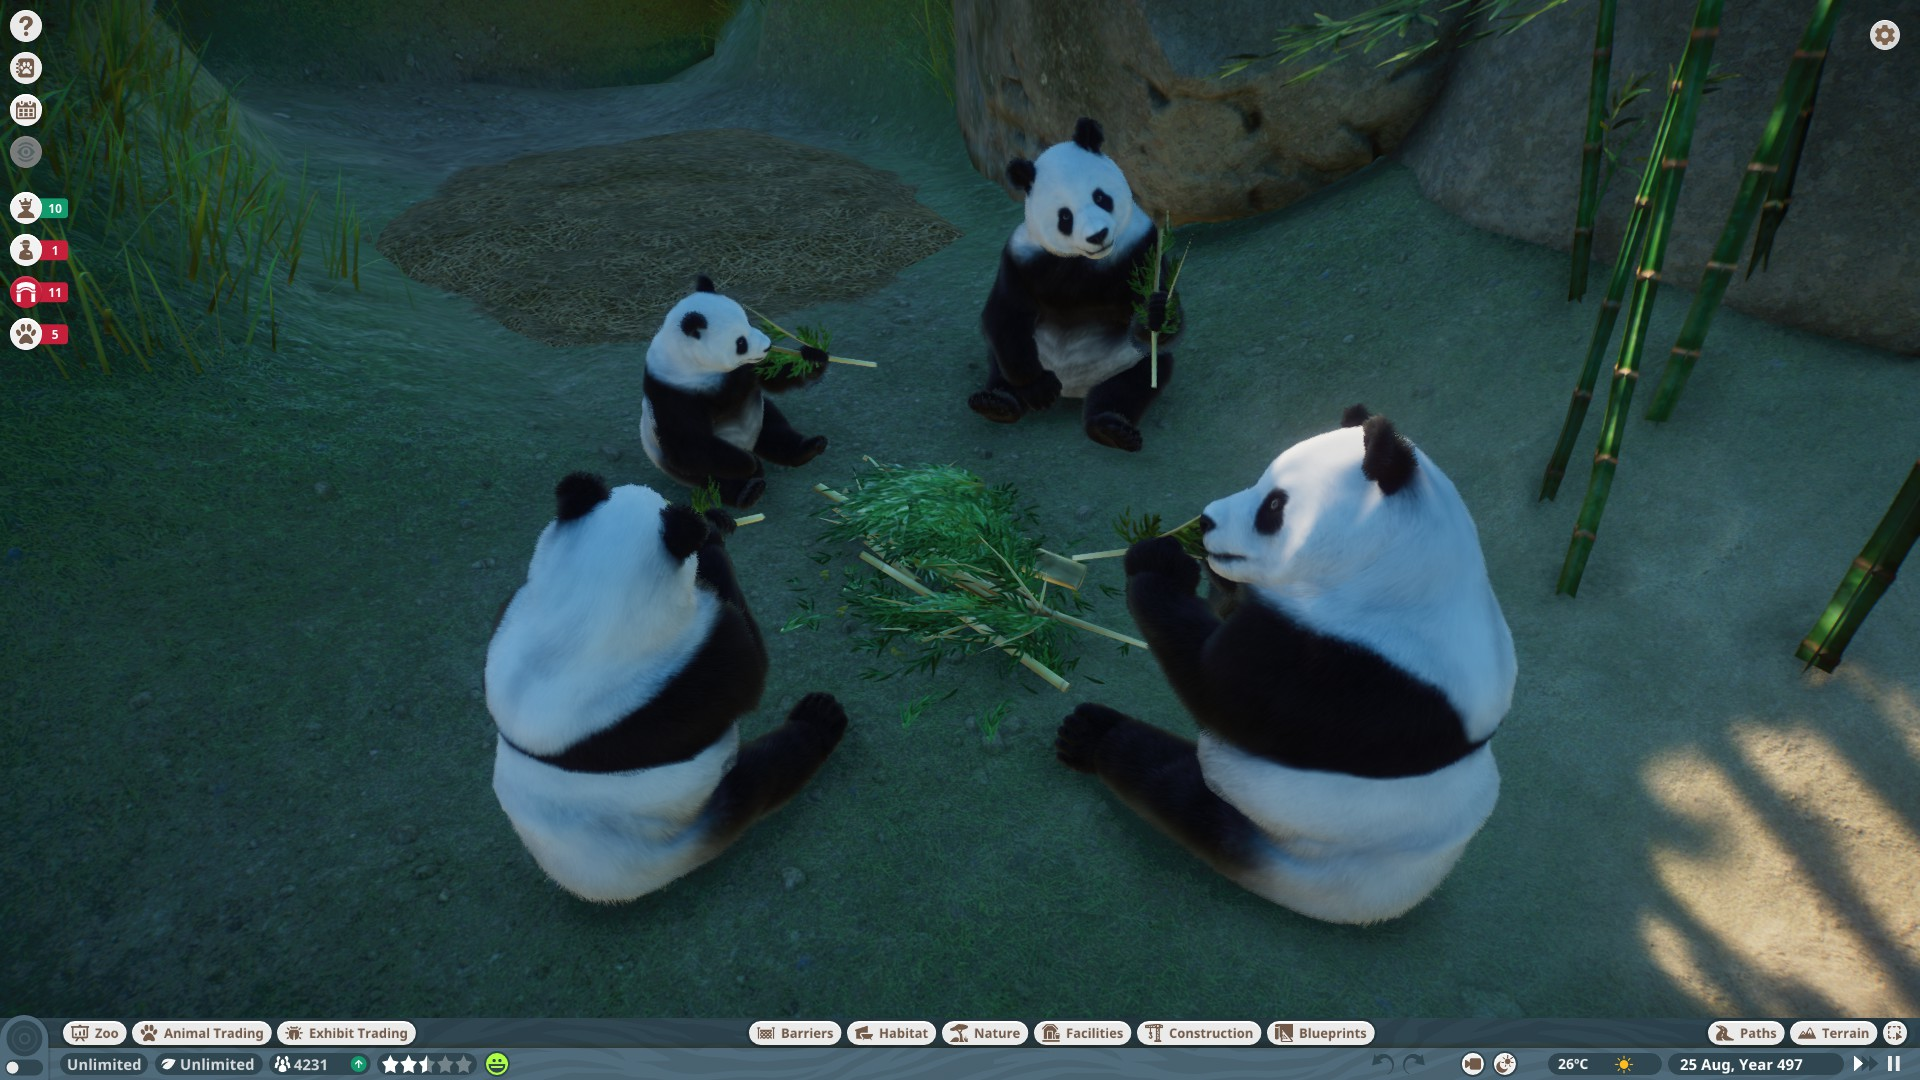 Family of pandas having lunch together, crunching on bamboo